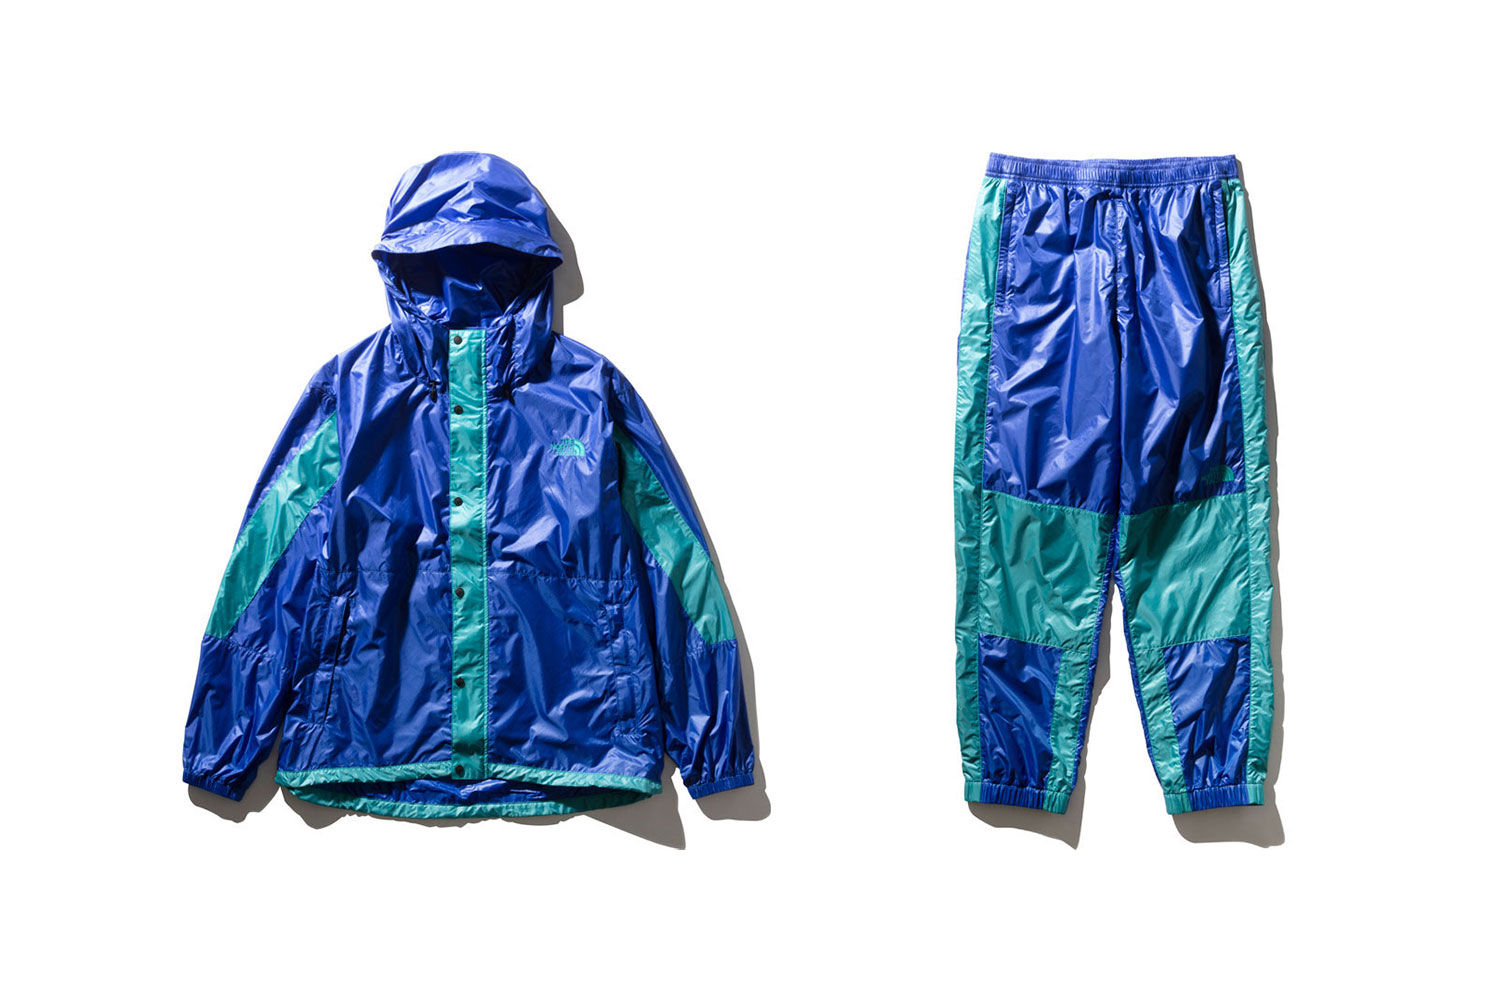 The North Face Bright Side Capsule Release PERTEX Quantum ECO up-cycled recycled nylon pants jackets outerwear pants windbreaker